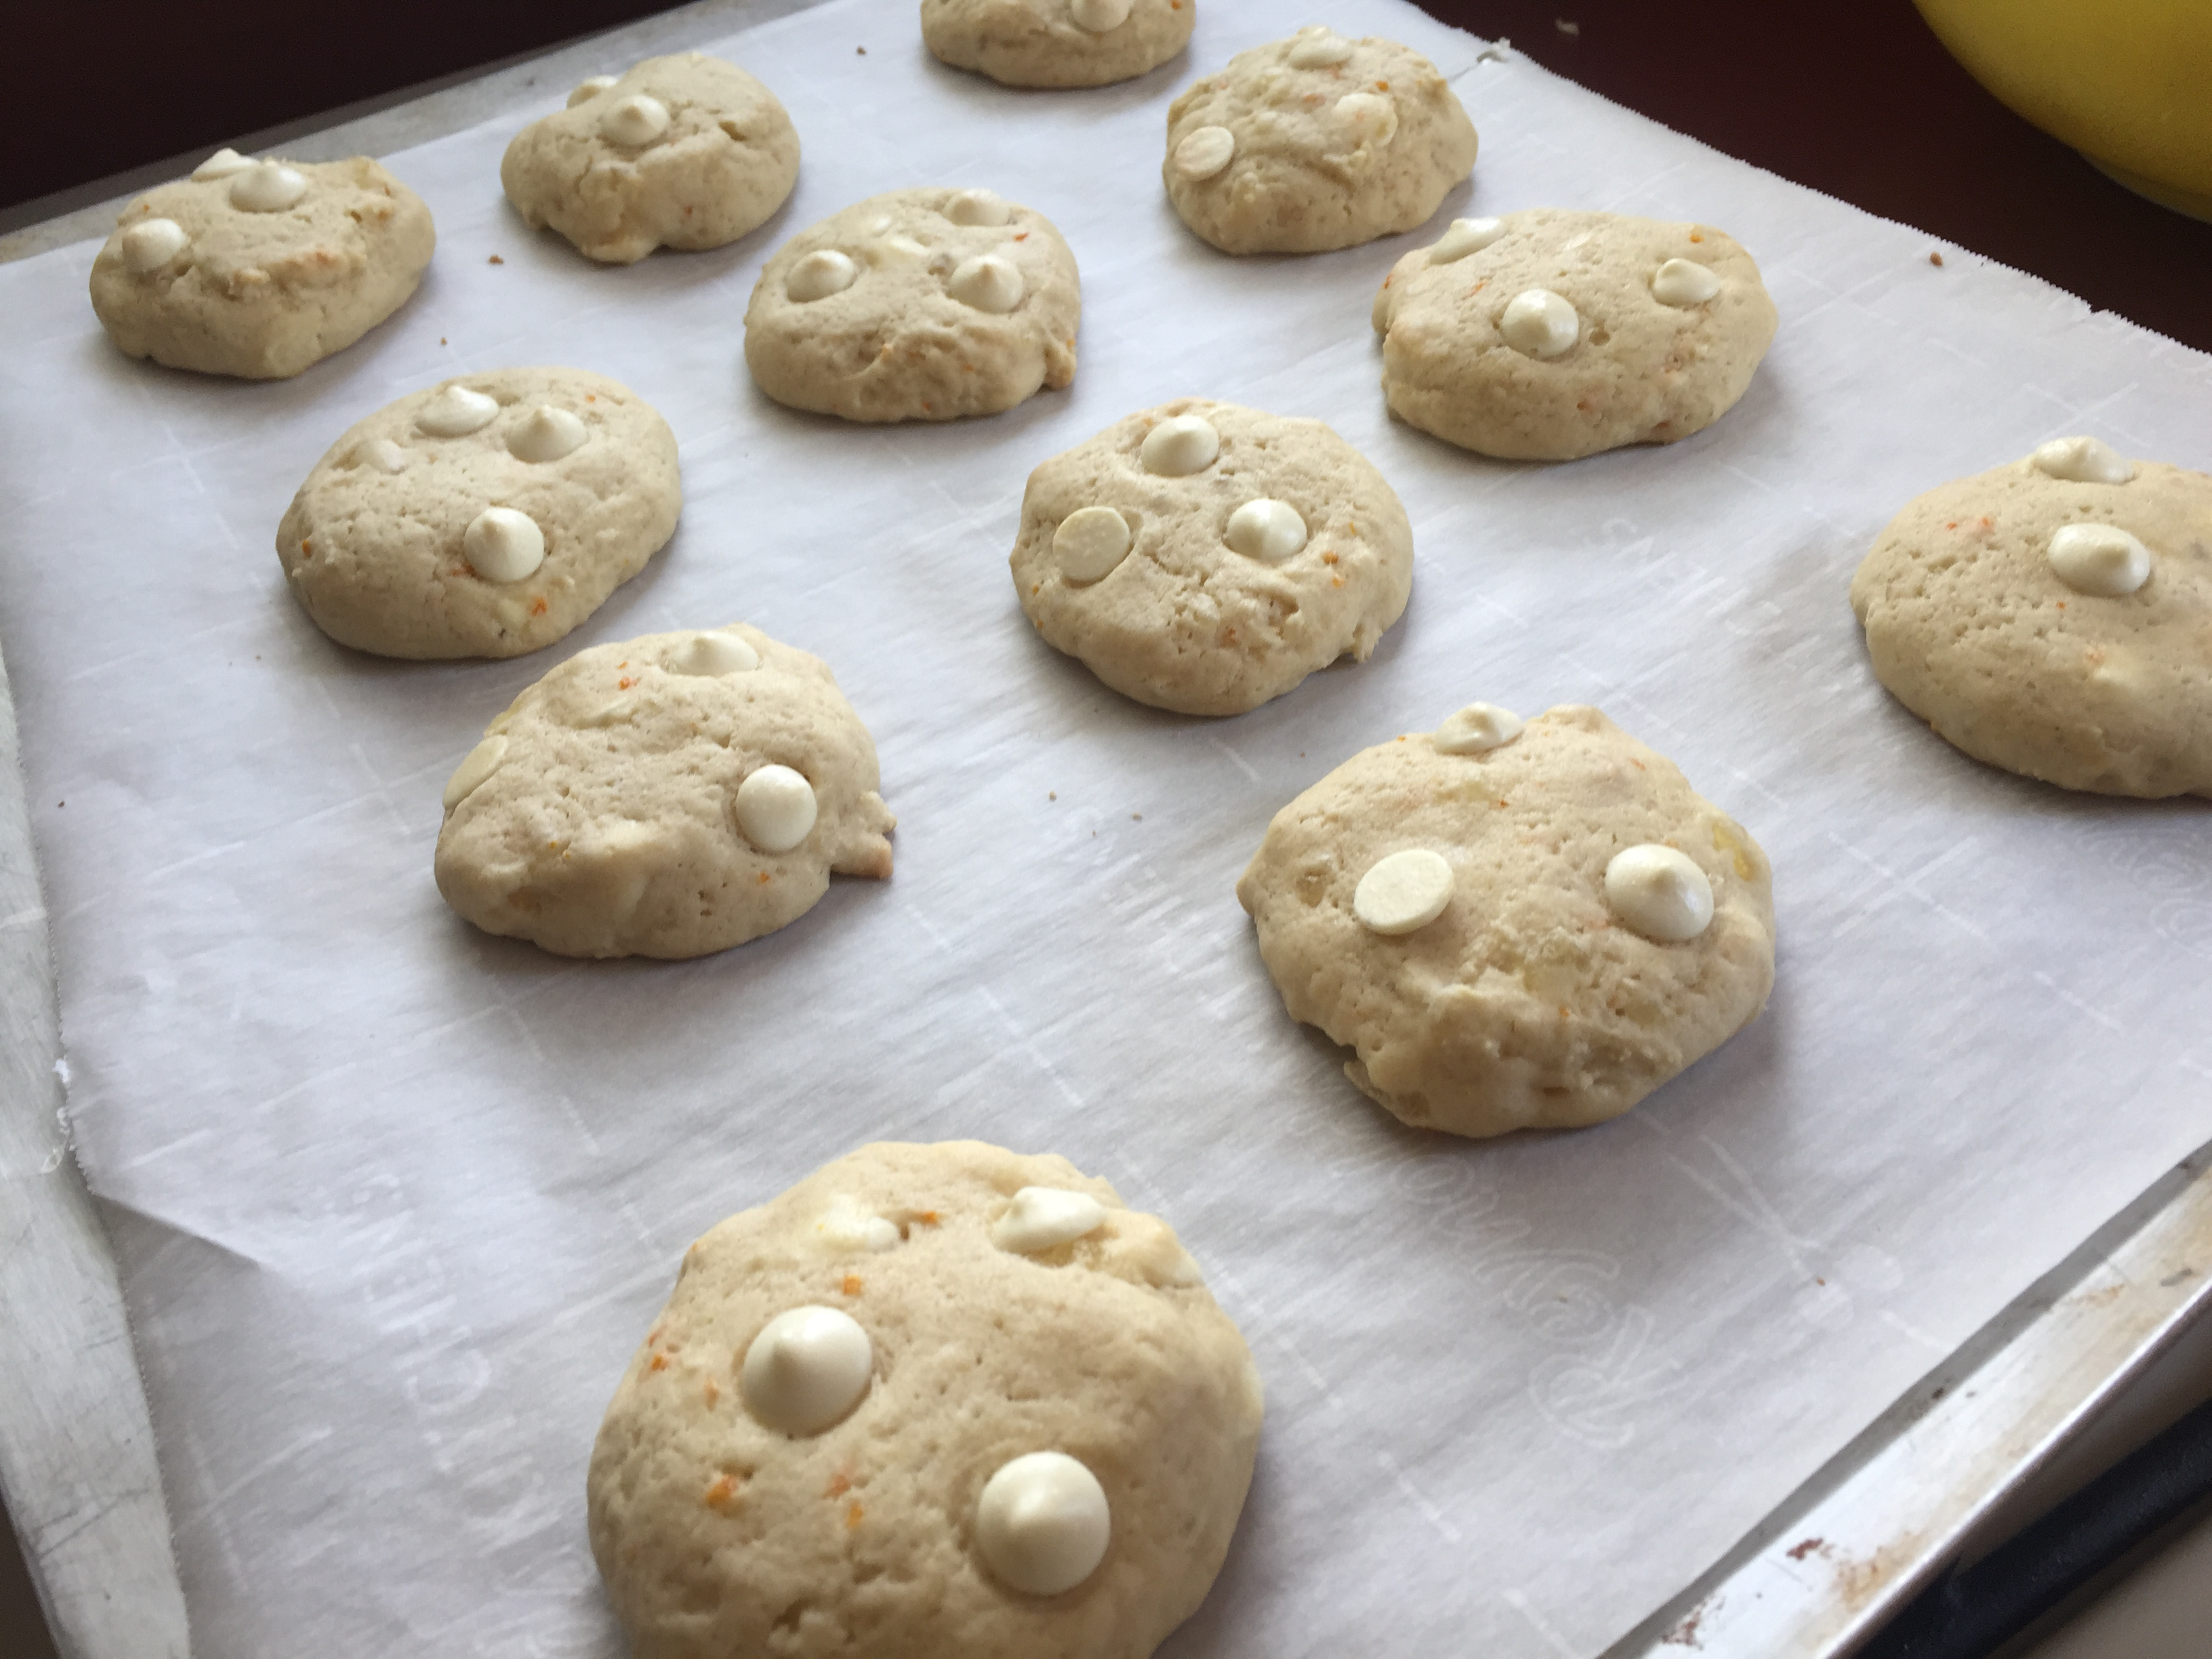 Tropical Fruit Cookies with White Chocolate Chips